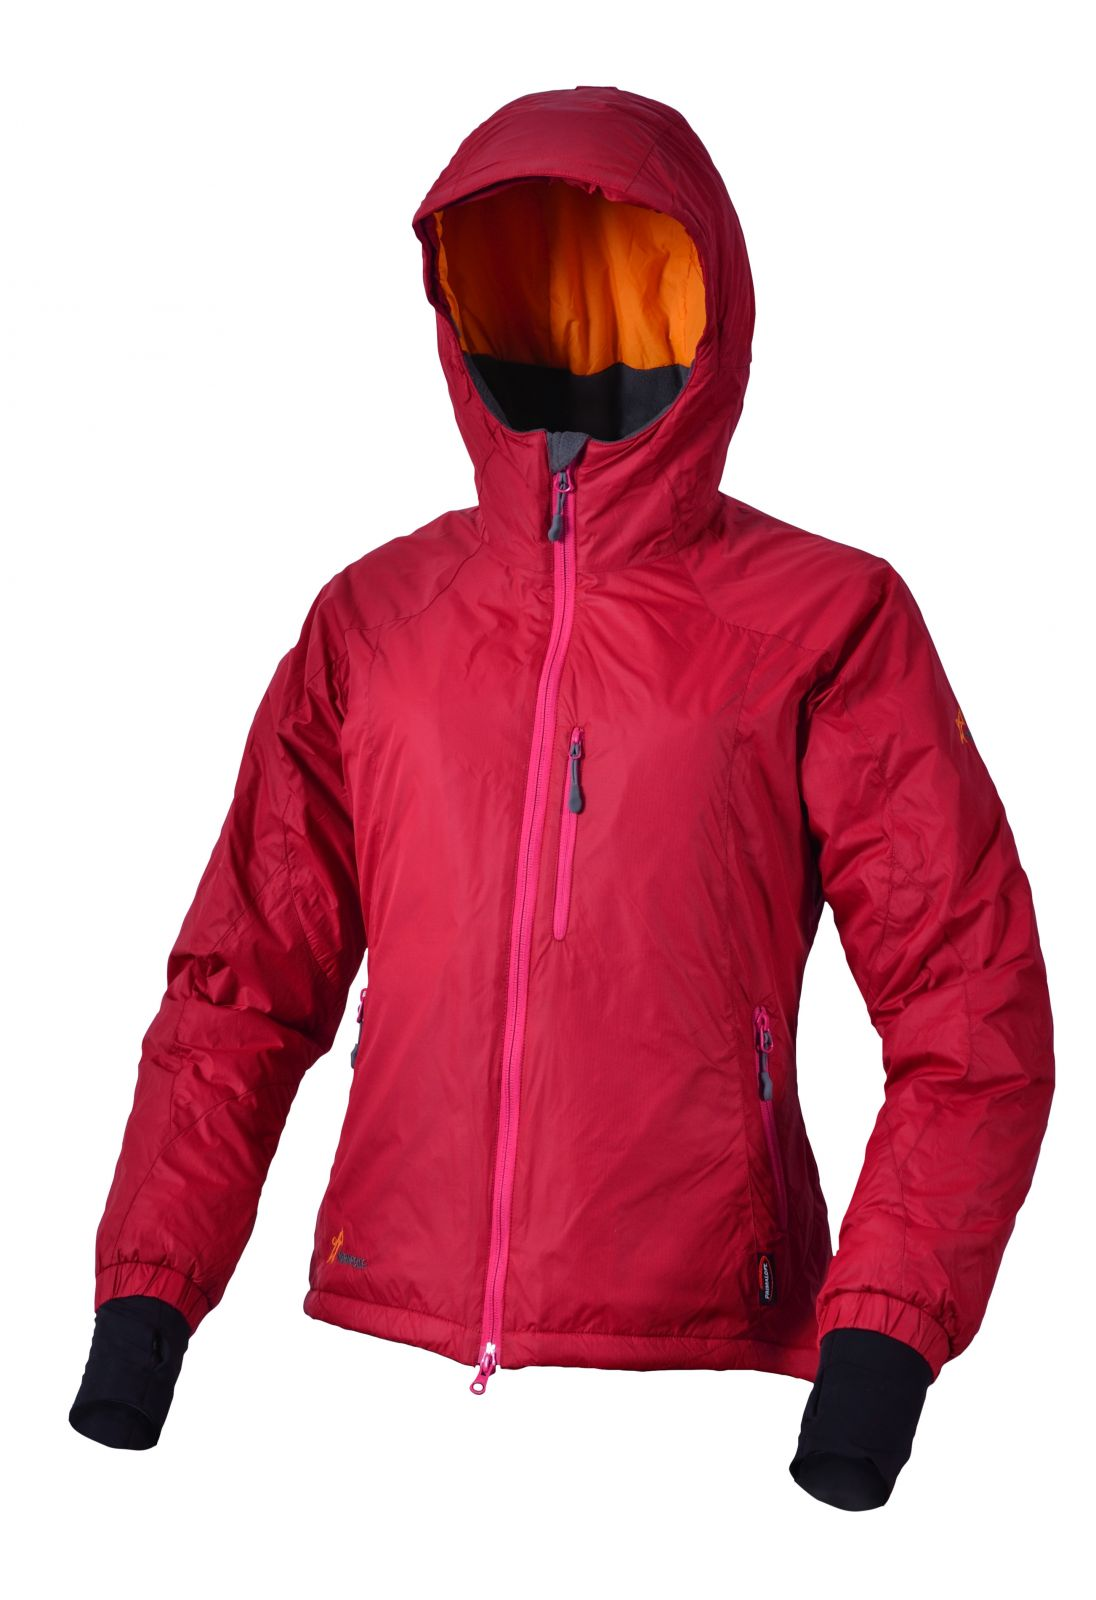 Tazz-Sport - Warmpeace Breeze lady merlot red